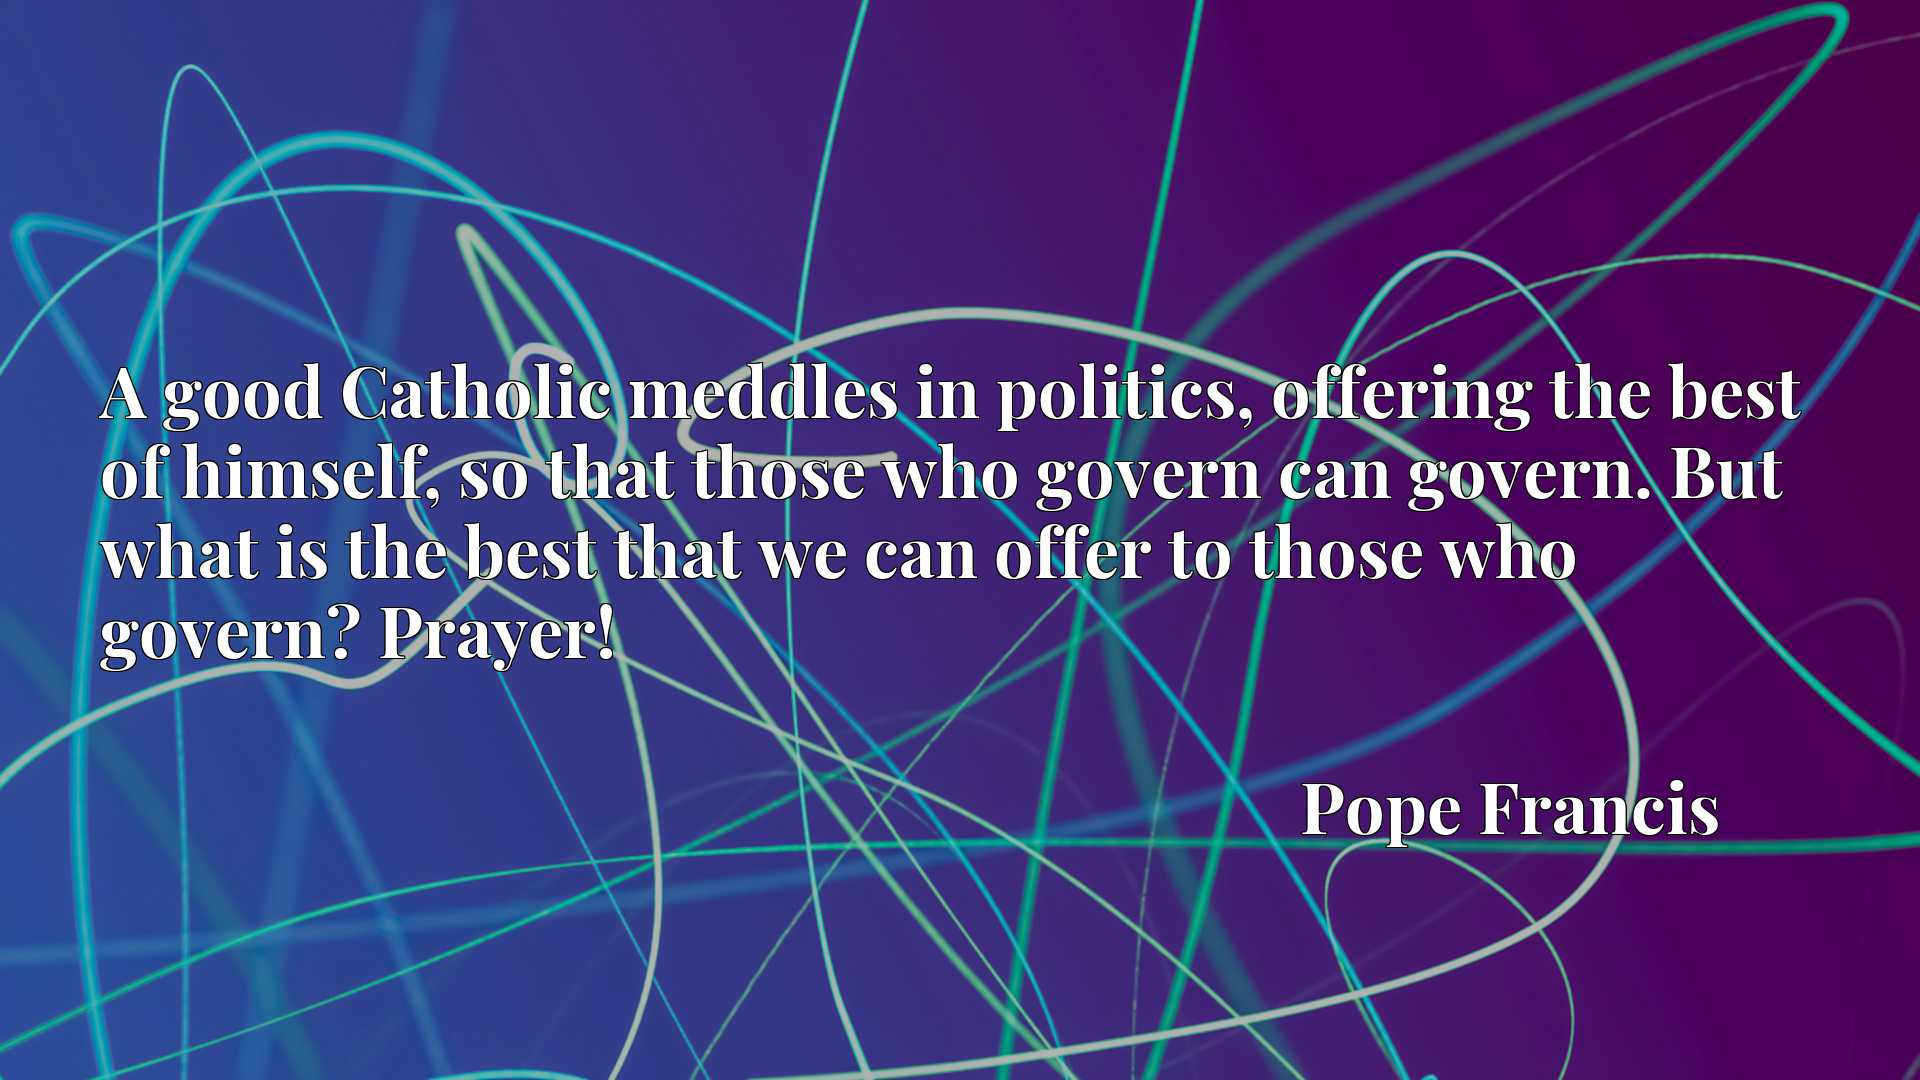 A good Catholic meddles in politics, offering the best of himself, so that those who govern can govern. But what is the best that we can offer to those who govern? Prayer!